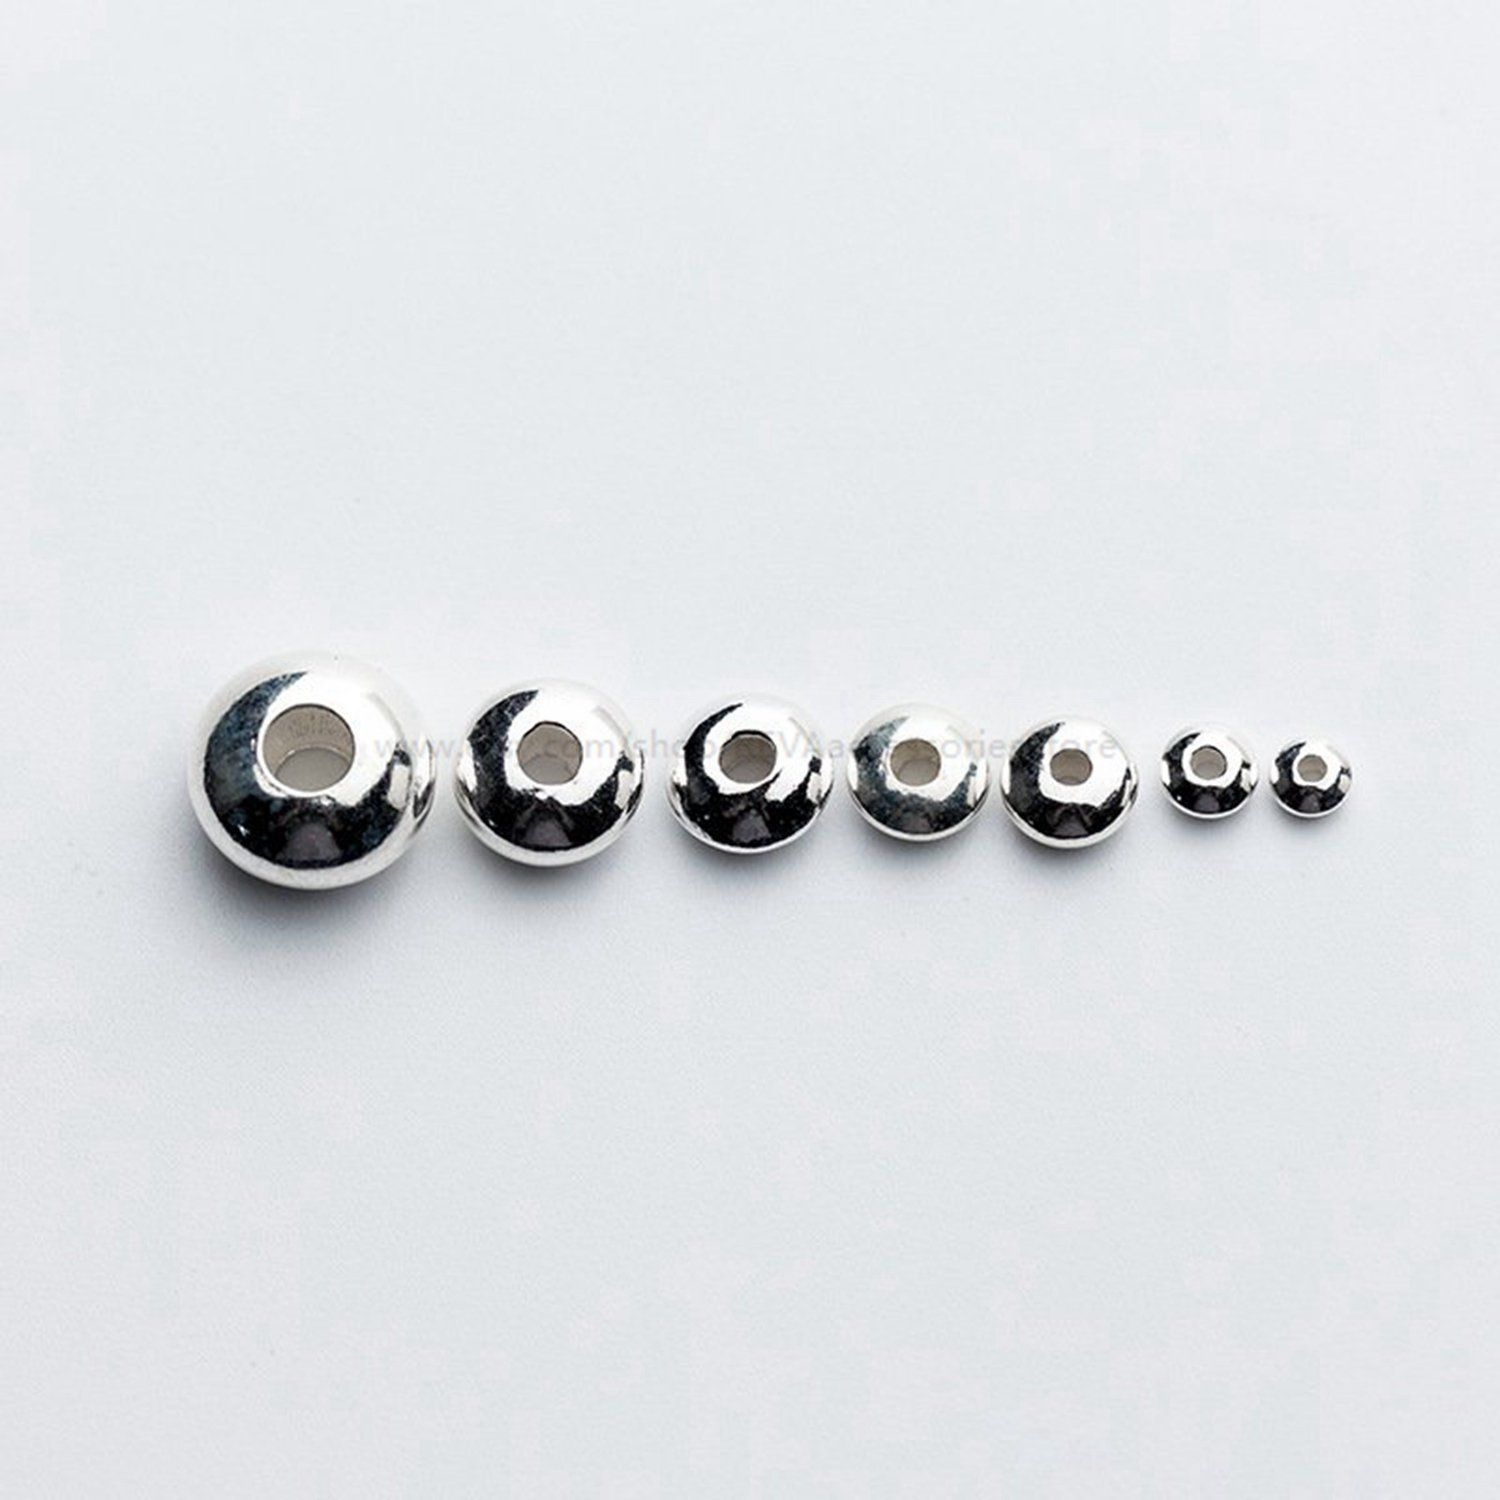 4mm 10mm 925 Sterling Silver ROUND SPACER BEADS 2mm 5mm 8mm 6mm 3mm